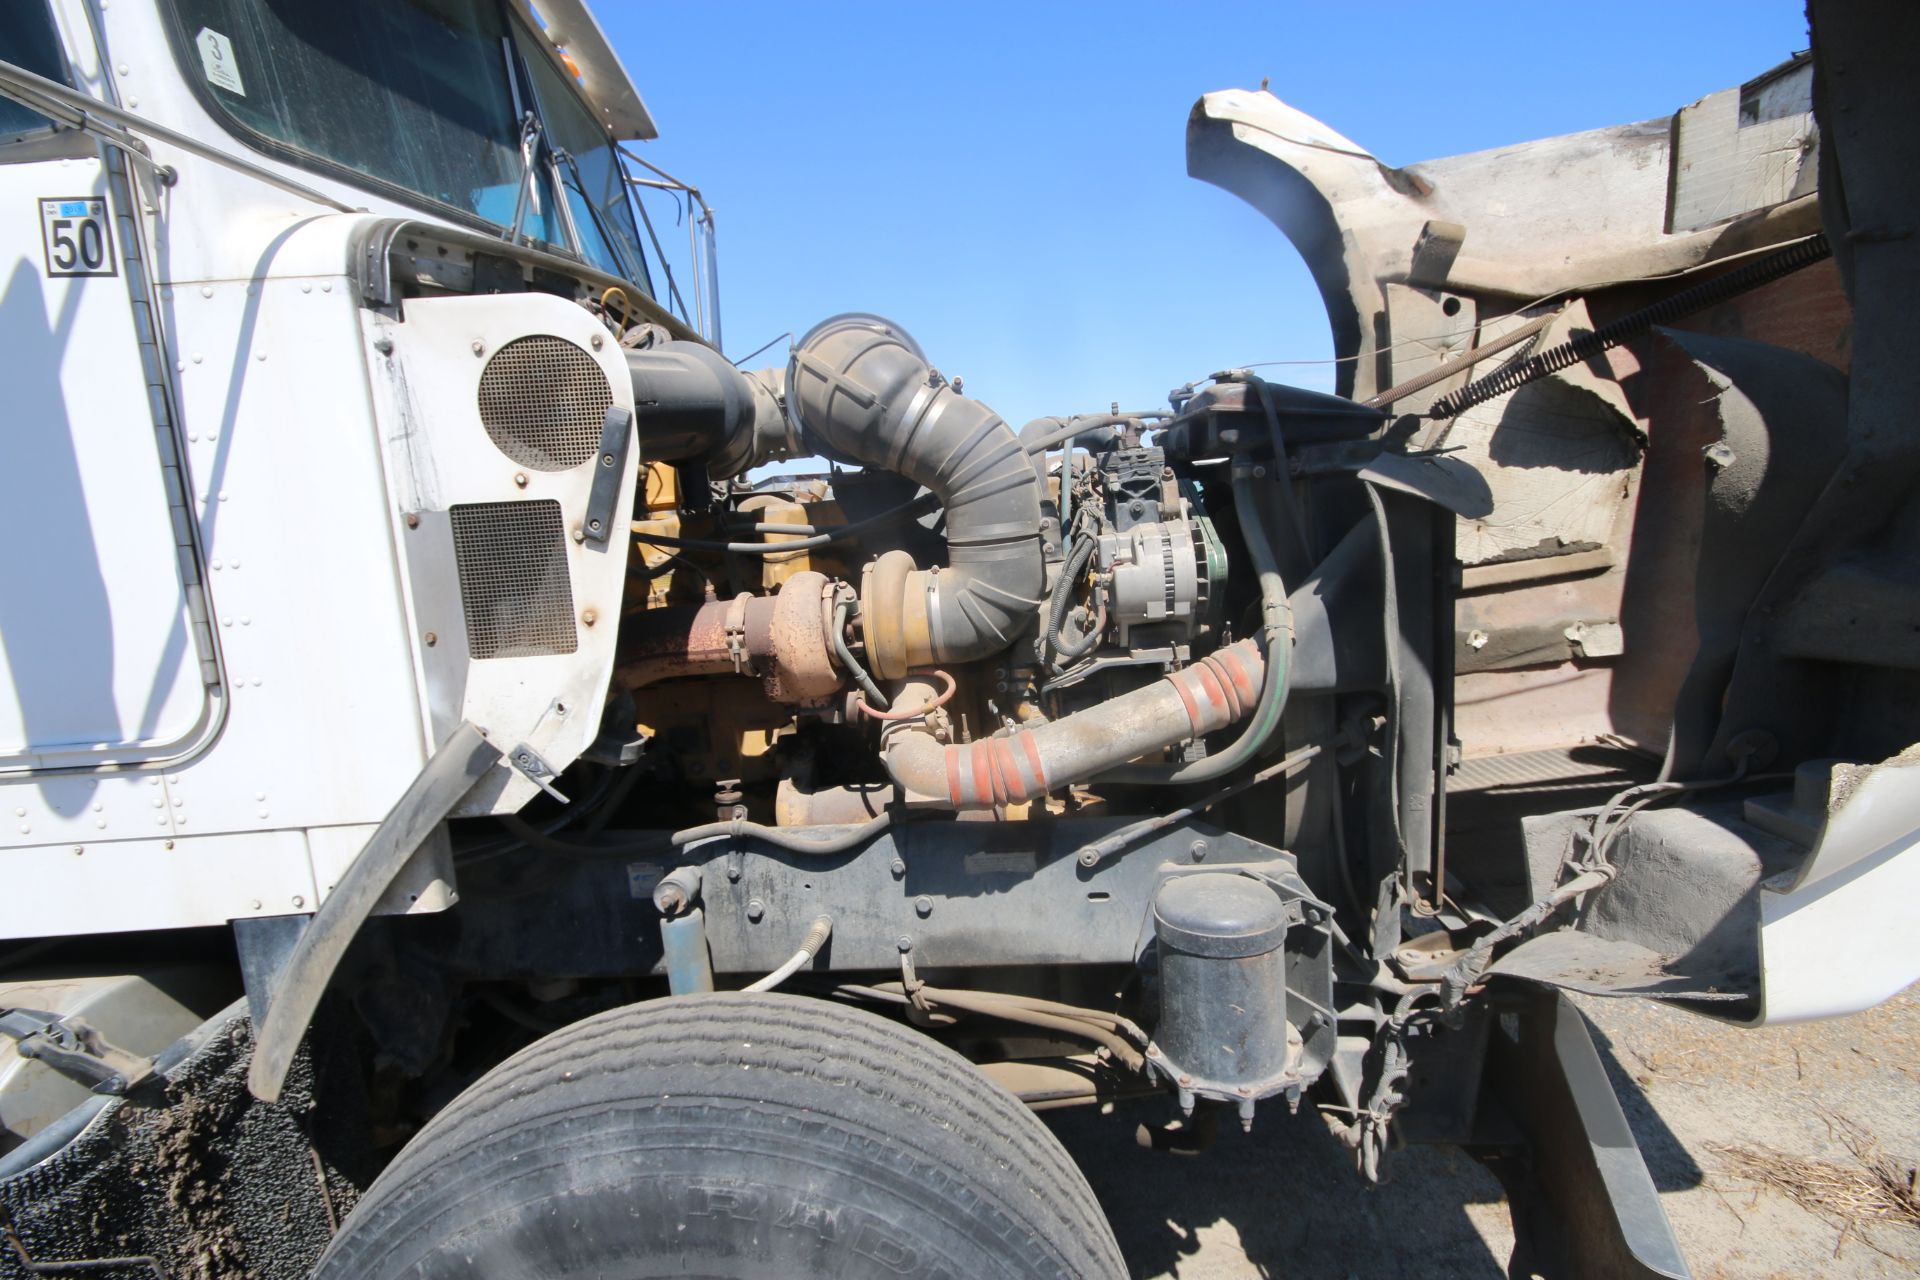 1996 Kenworth 3-Axle Roll-Off Straight Truck, VIN #: 1XKDDB9XOTS687107, with 24,722 Miles, License - Image 7 of 30